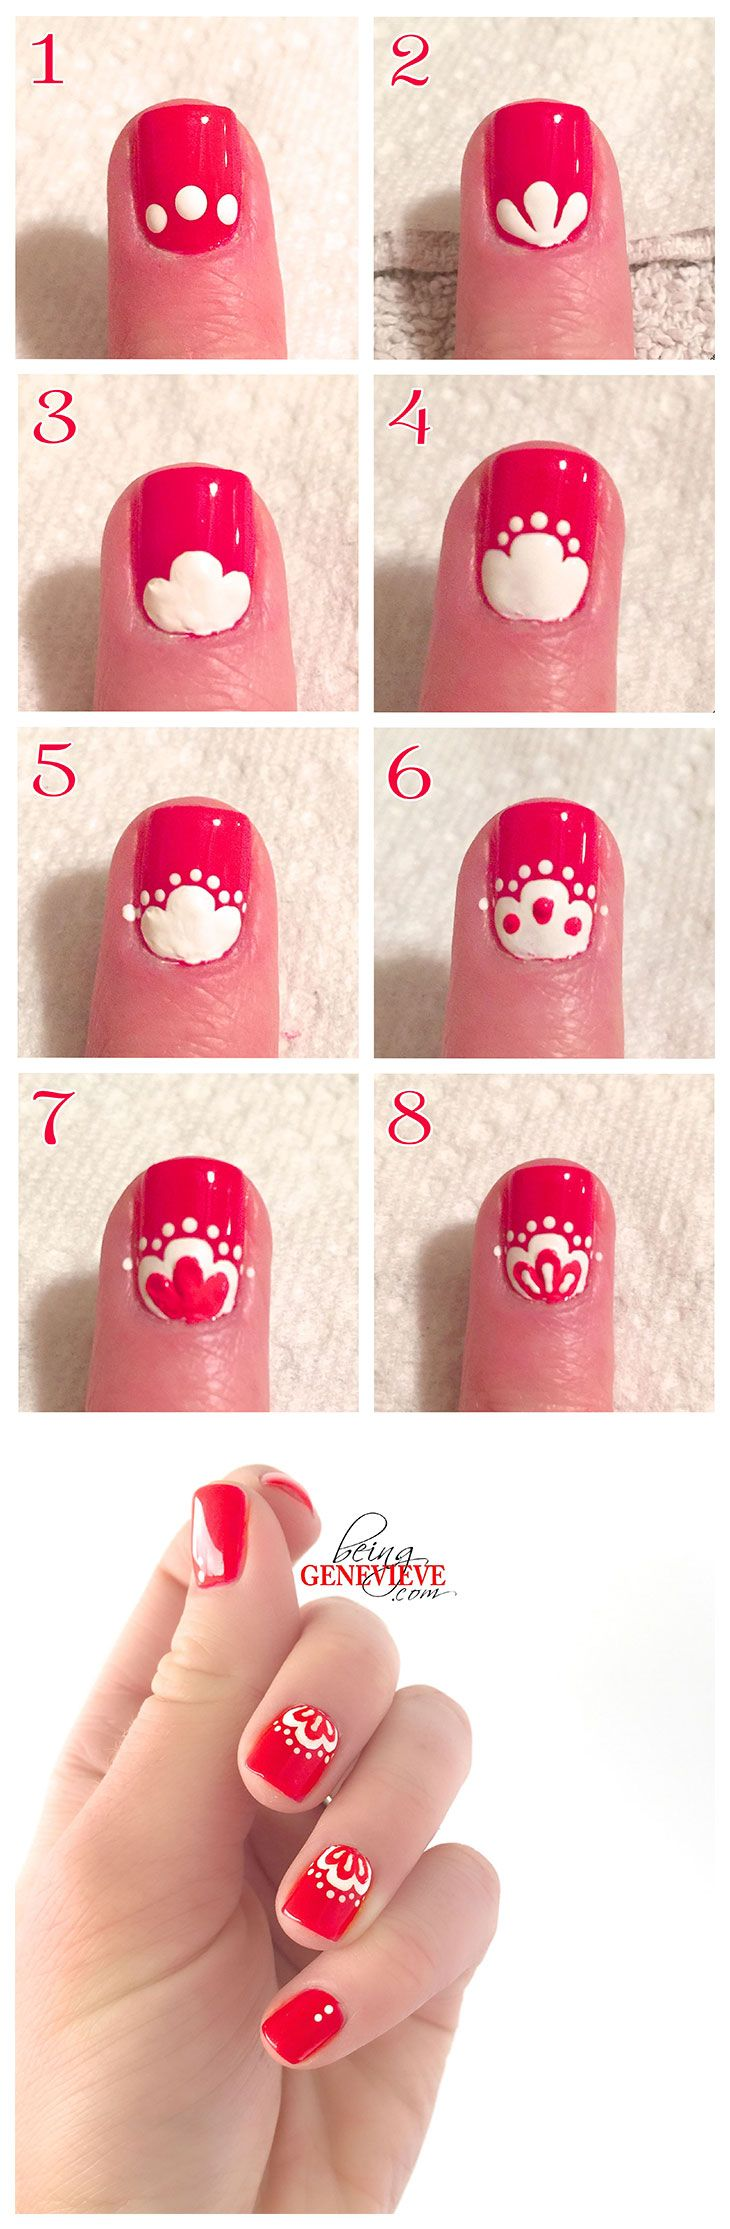 Oriental Lace Nails Pinterest Lace Nail Art Lace Nails And